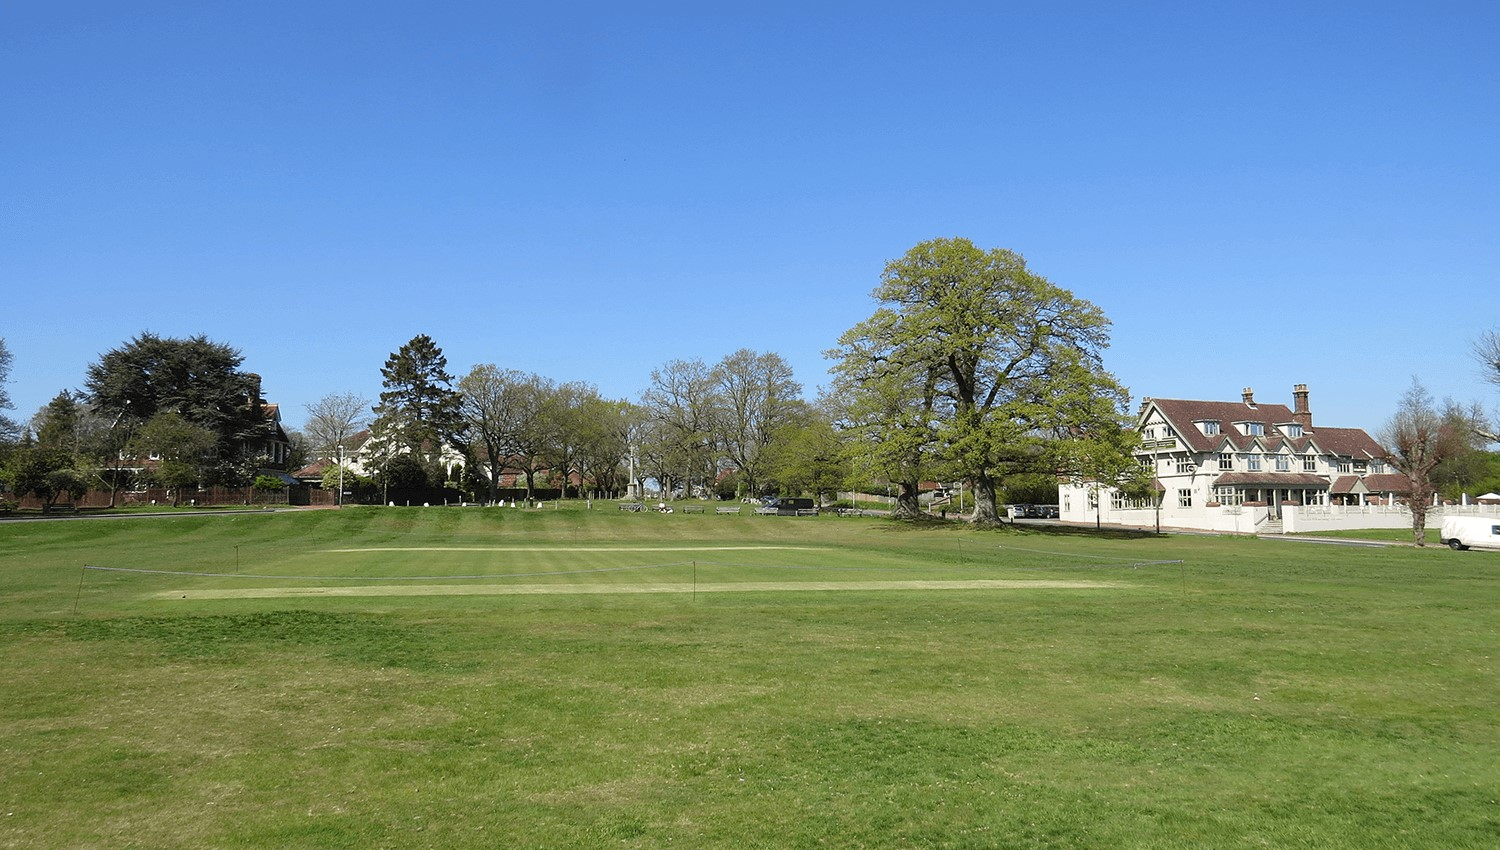 Royal Tunbridge Wells cricket club building